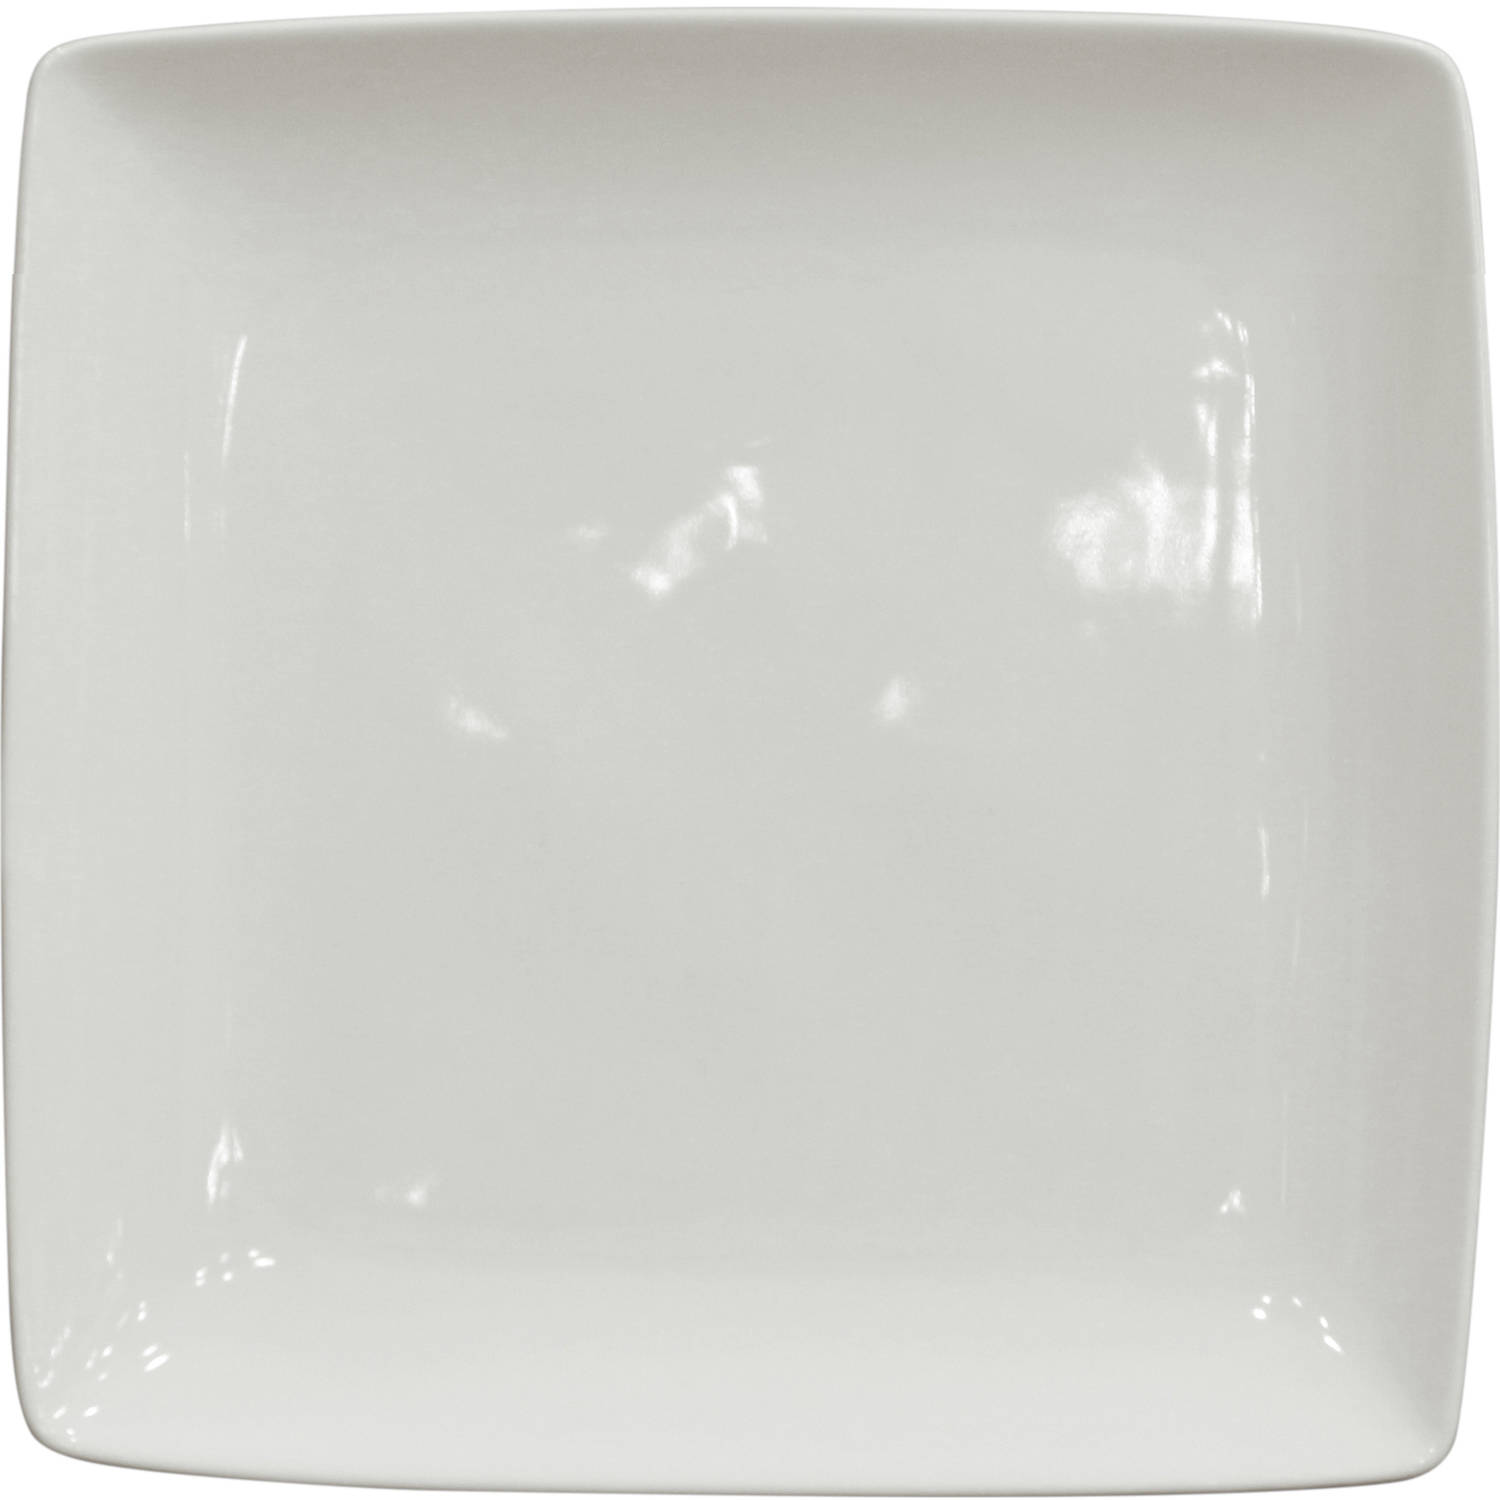 better homes and gardens ssq dinner plate - Square Dinner Plates